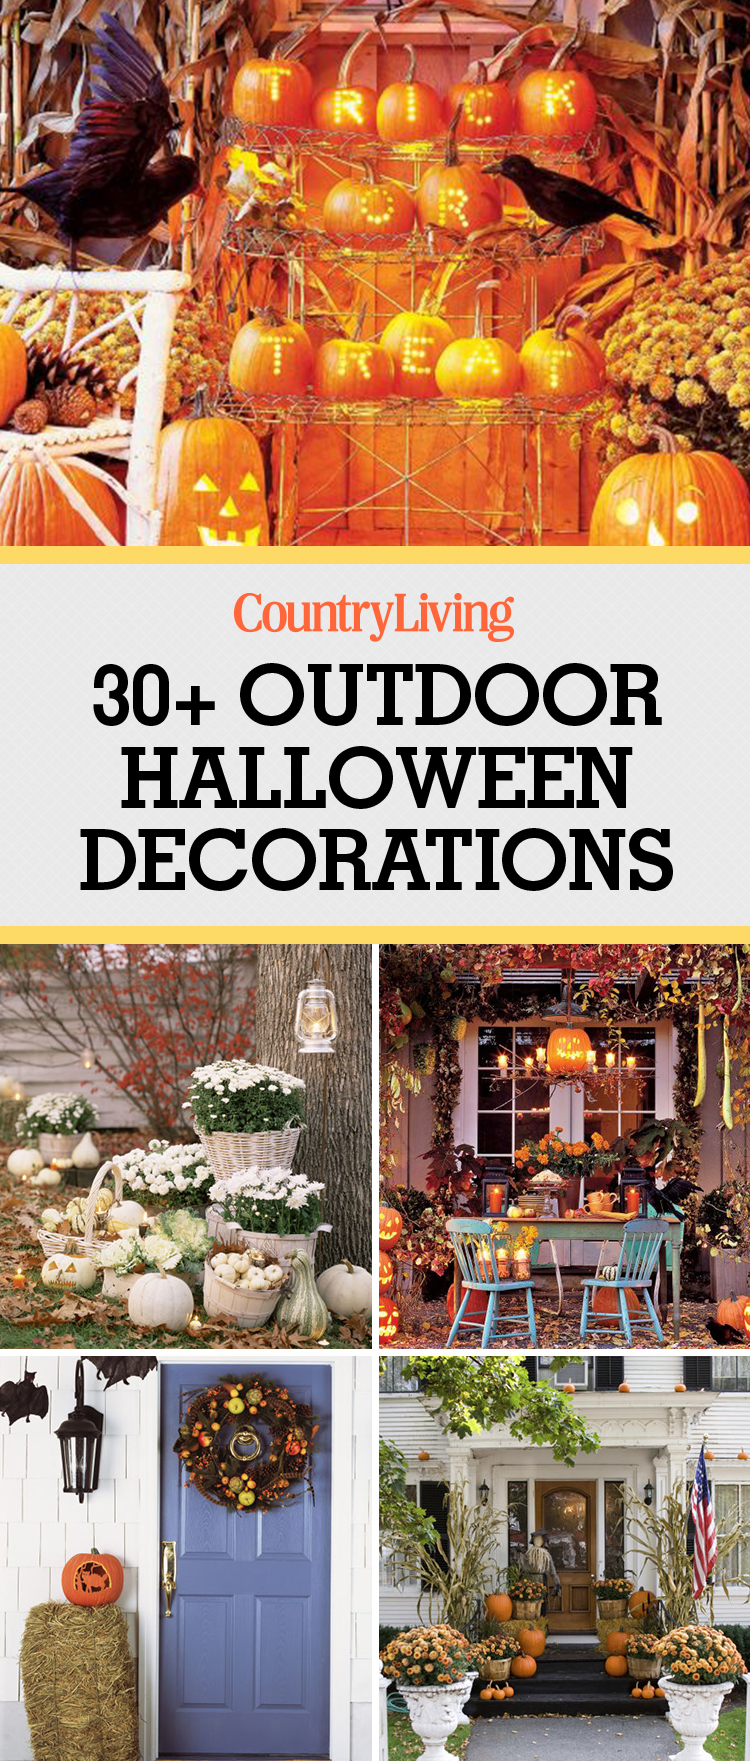 35 Best Outdoor Halloween Decoration Ideas - Easy Halloween Yard ...